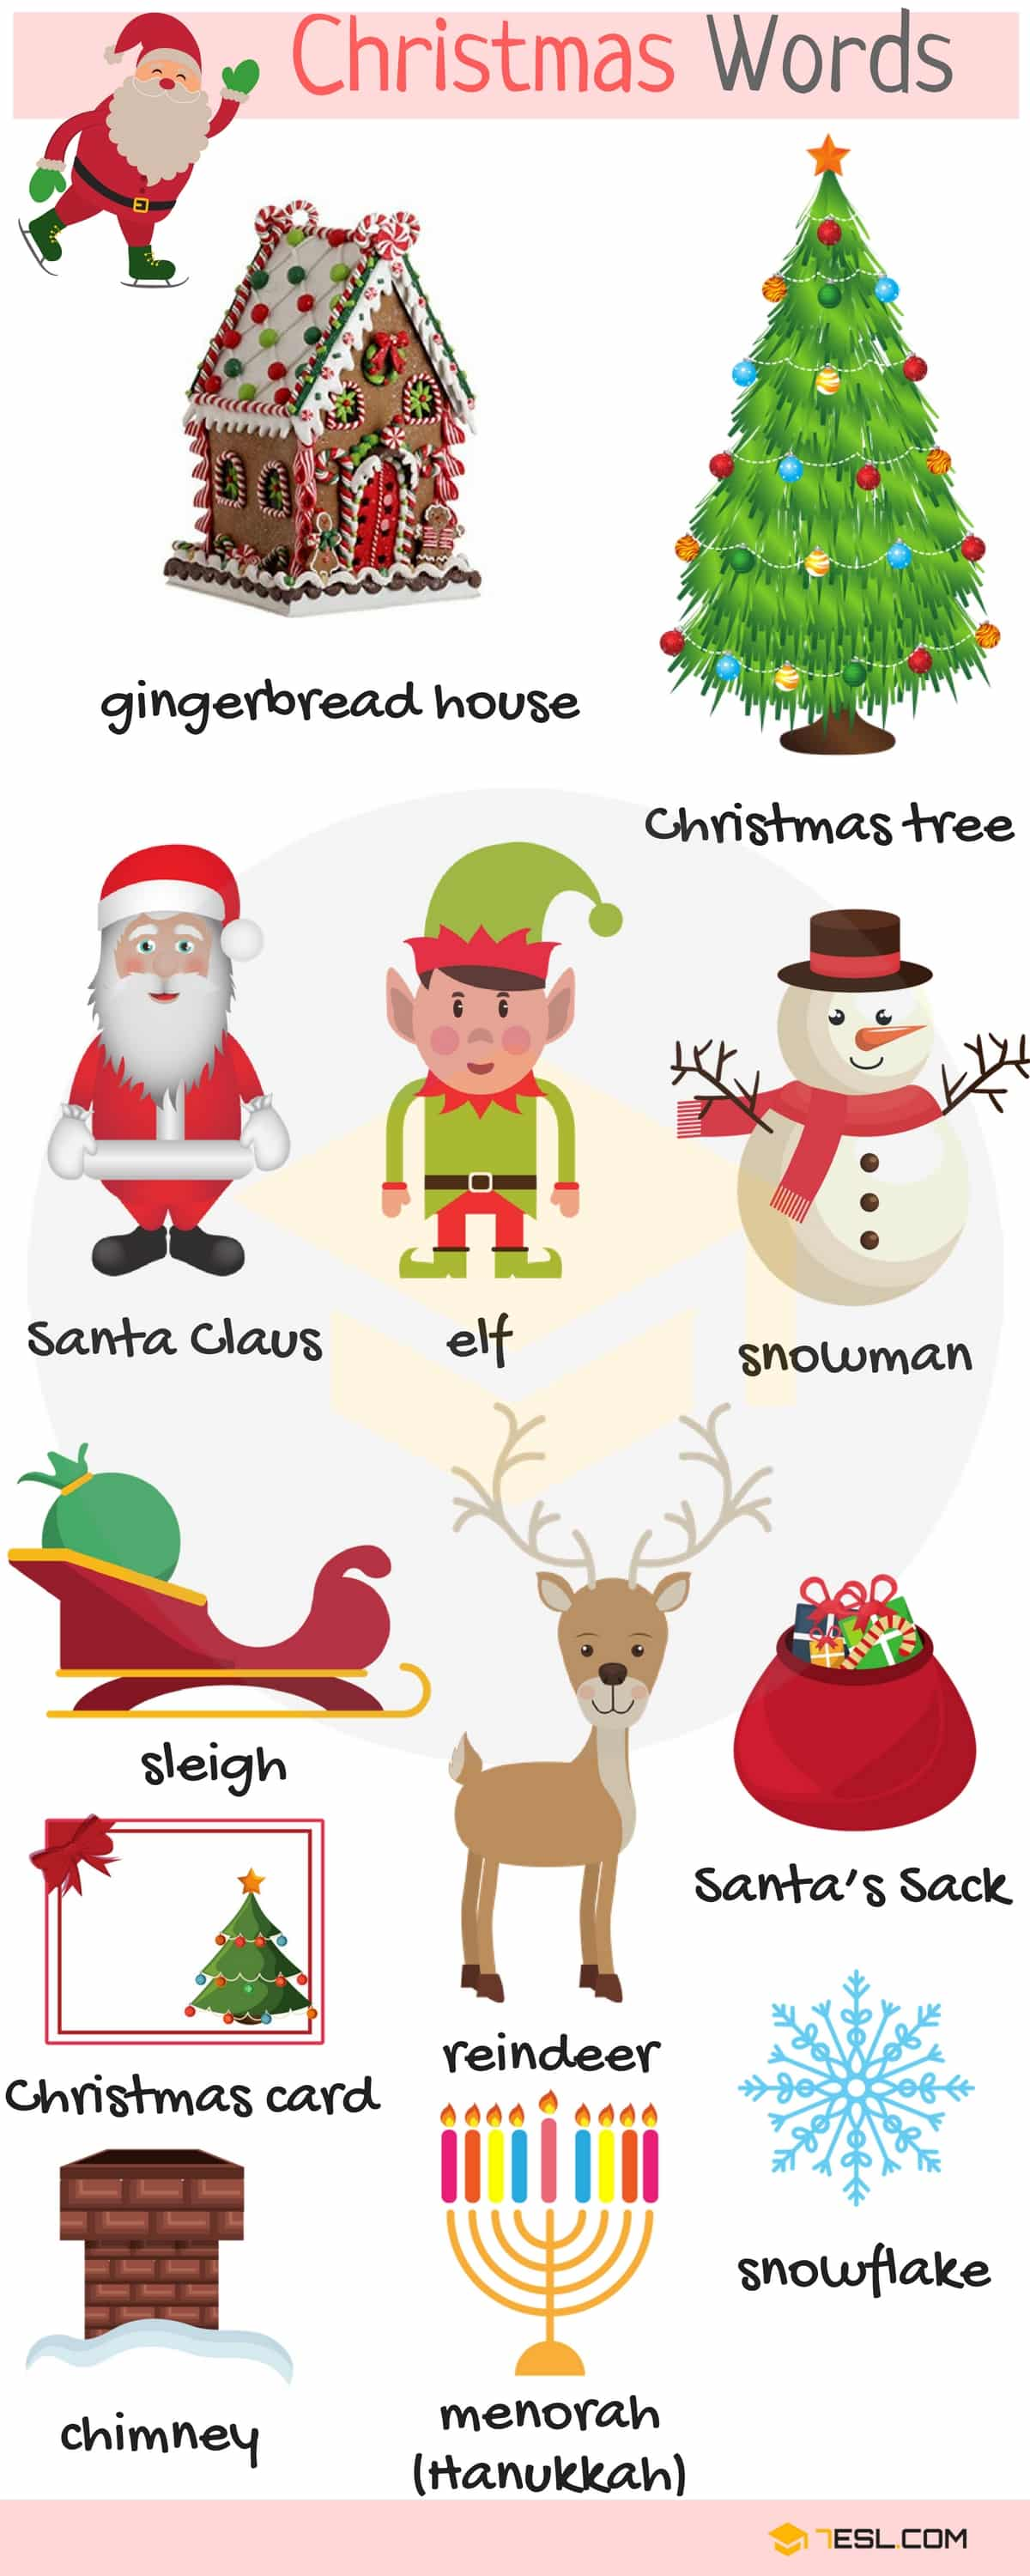 Christmas Words: Useful Christmas Vocabulary Words List